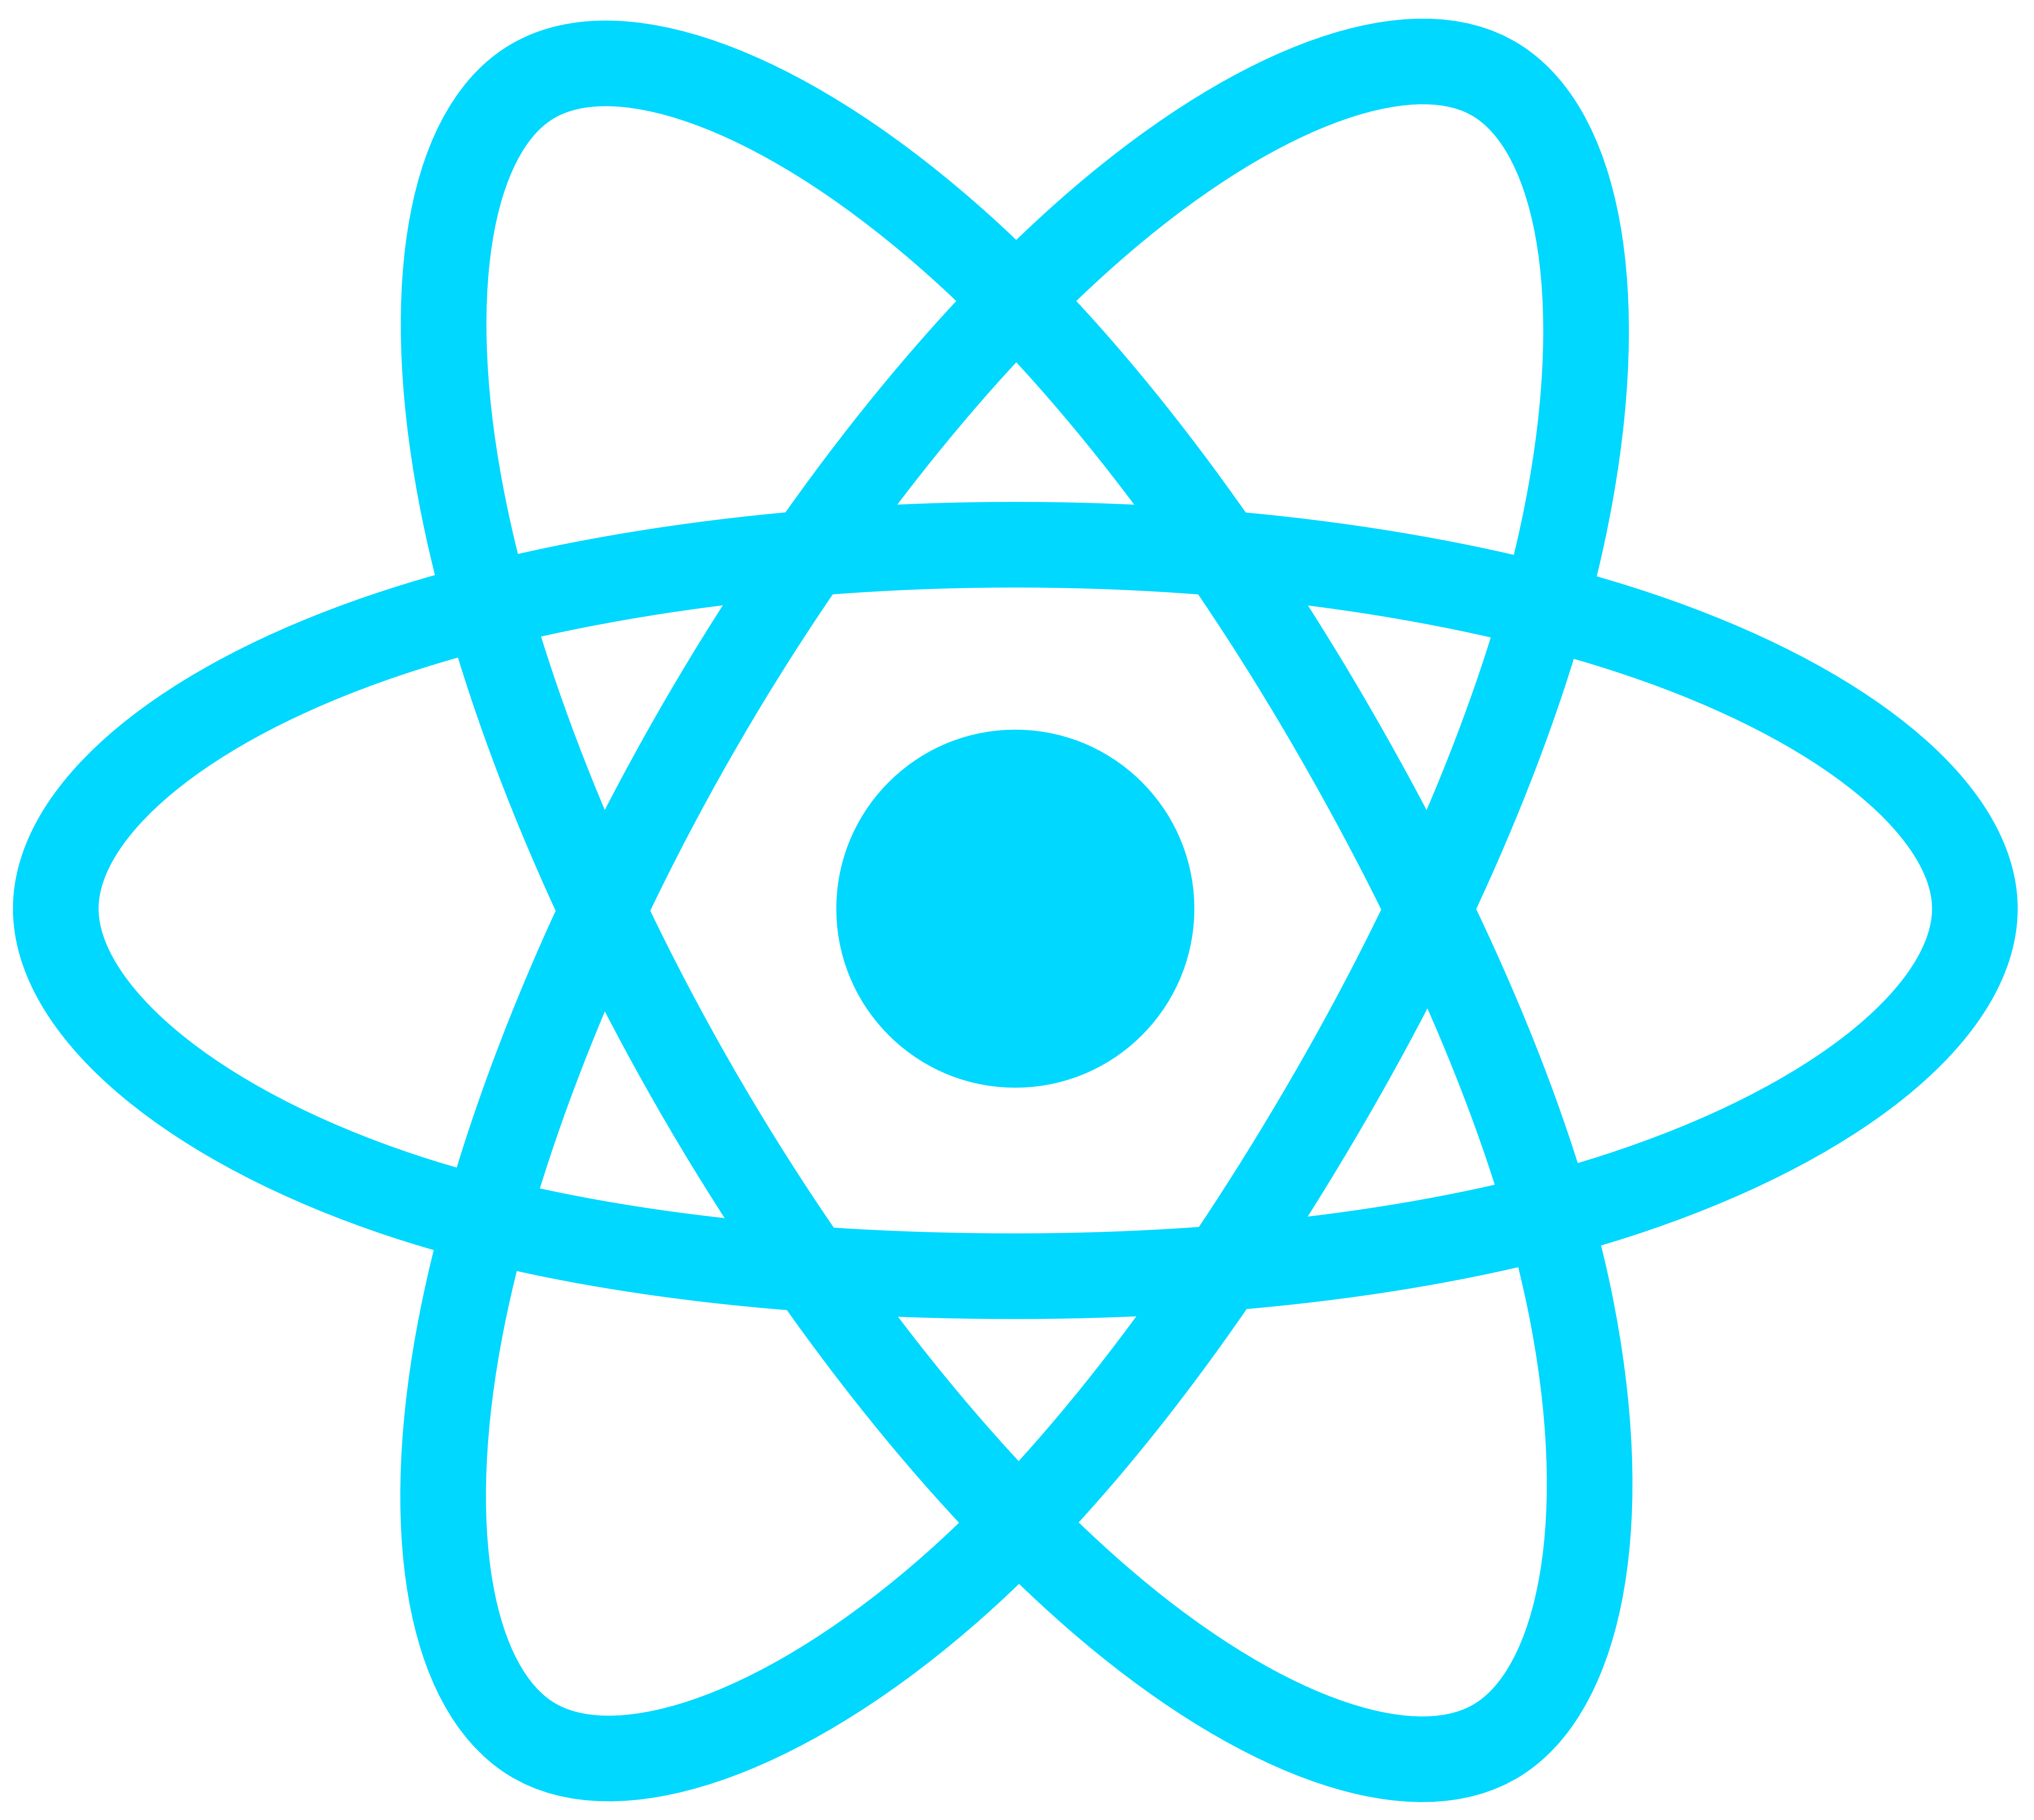 React - one of our tool stack